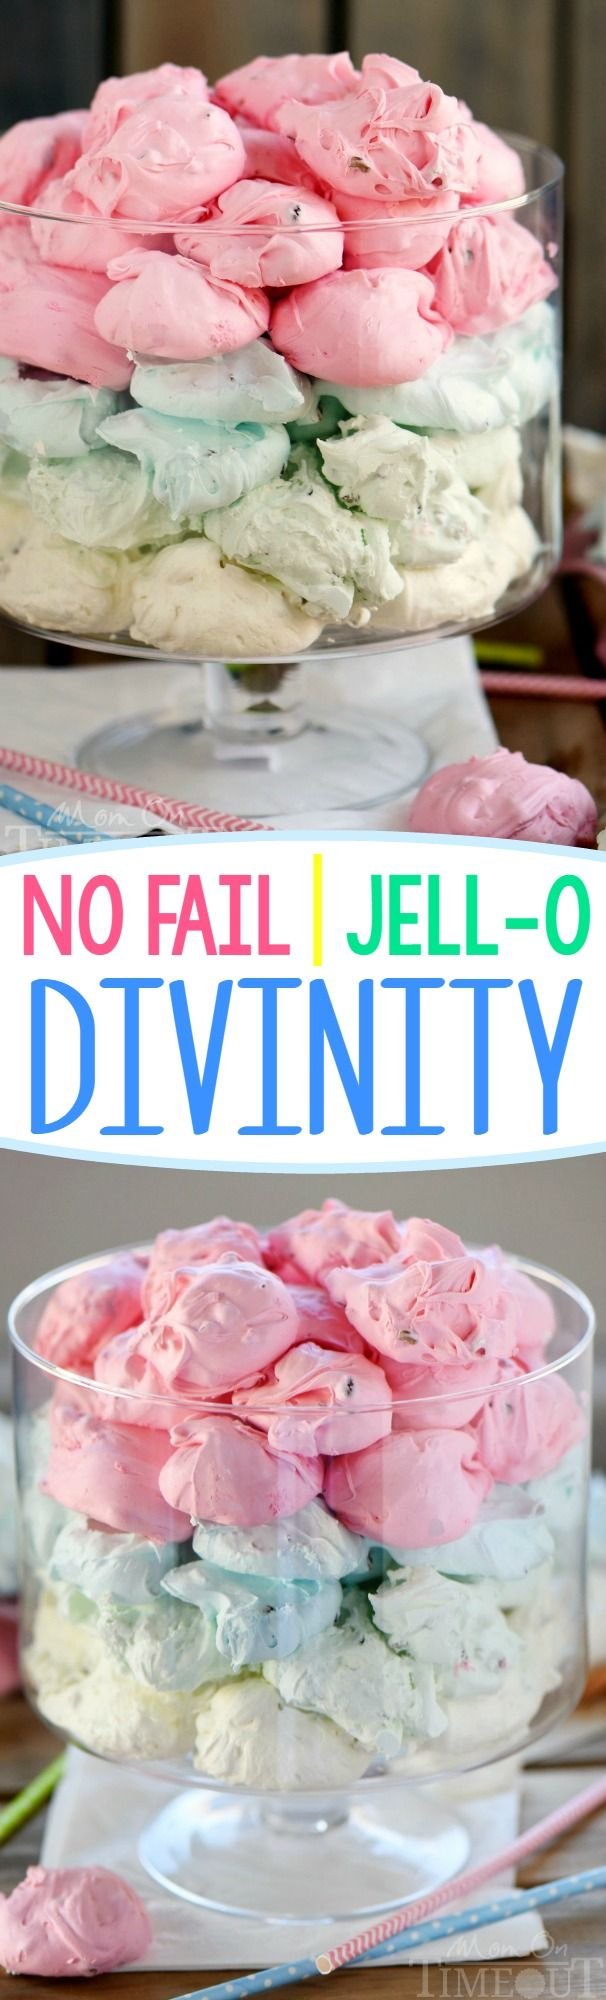 This easy, No Fail Jell-O Divinity recipe is sure to delight the child in…